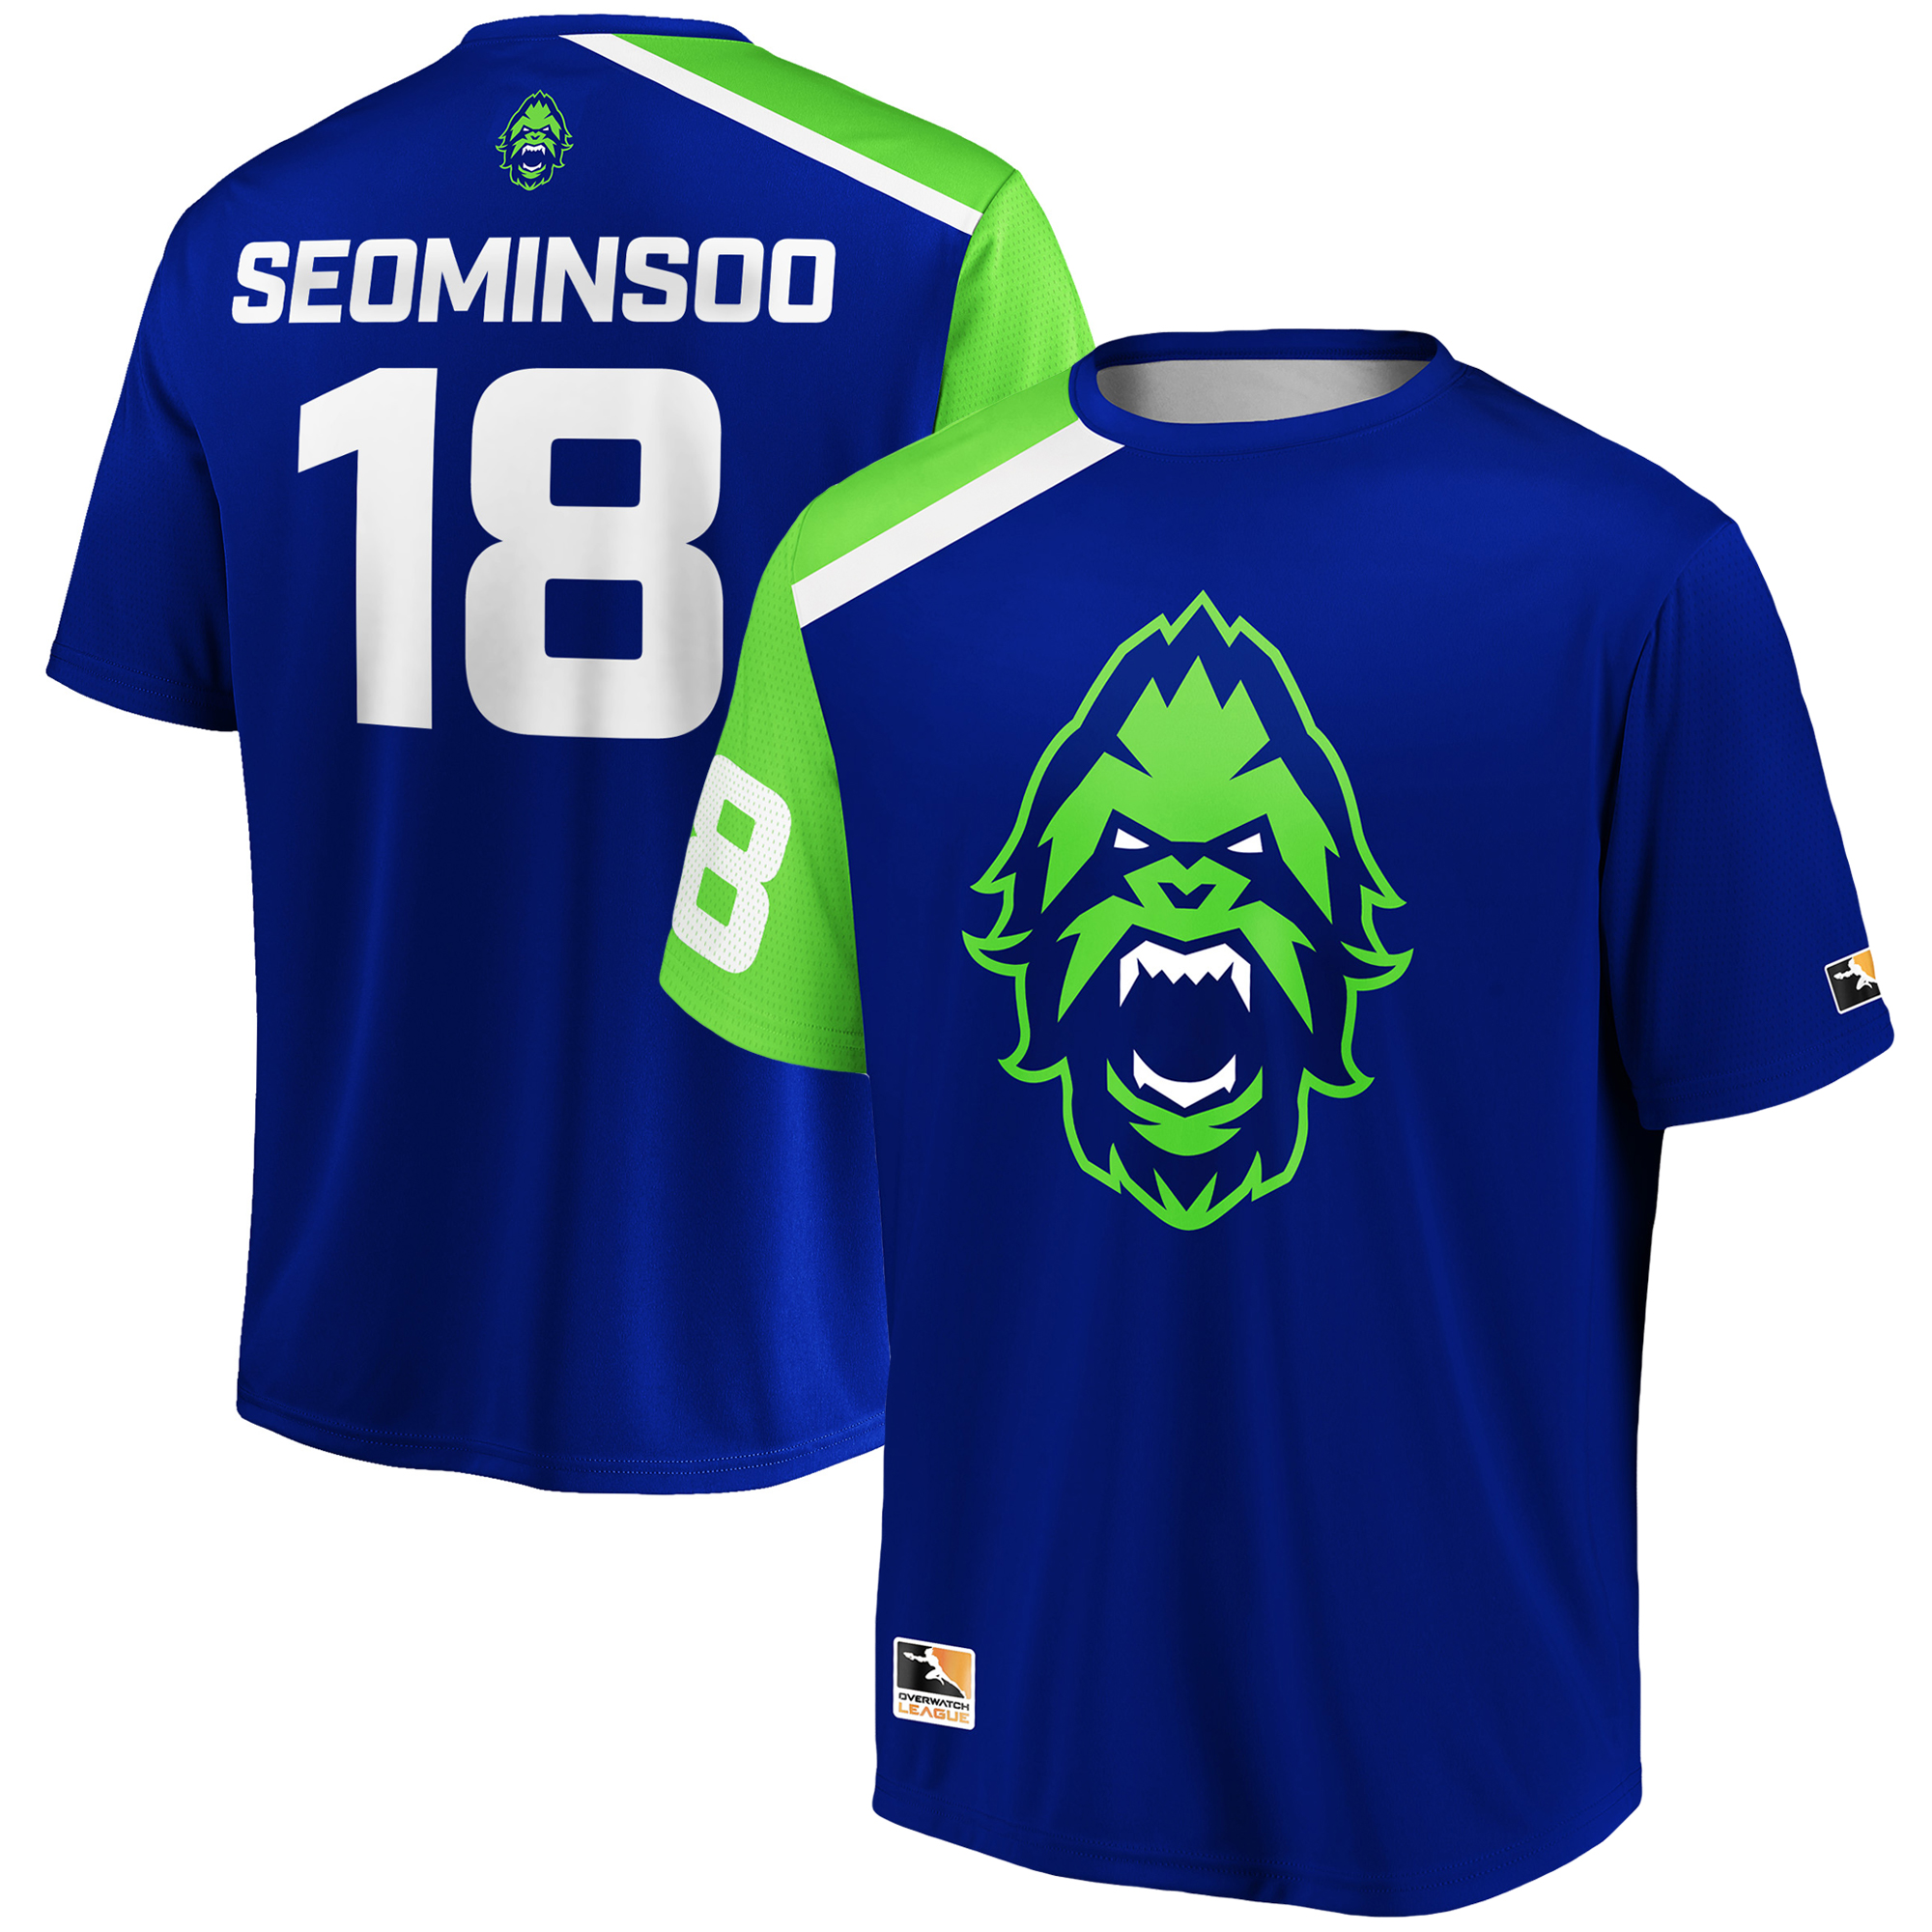 SeoMinSoo Vancouver Titans Overwatch League Replica Home Jersey - Blue